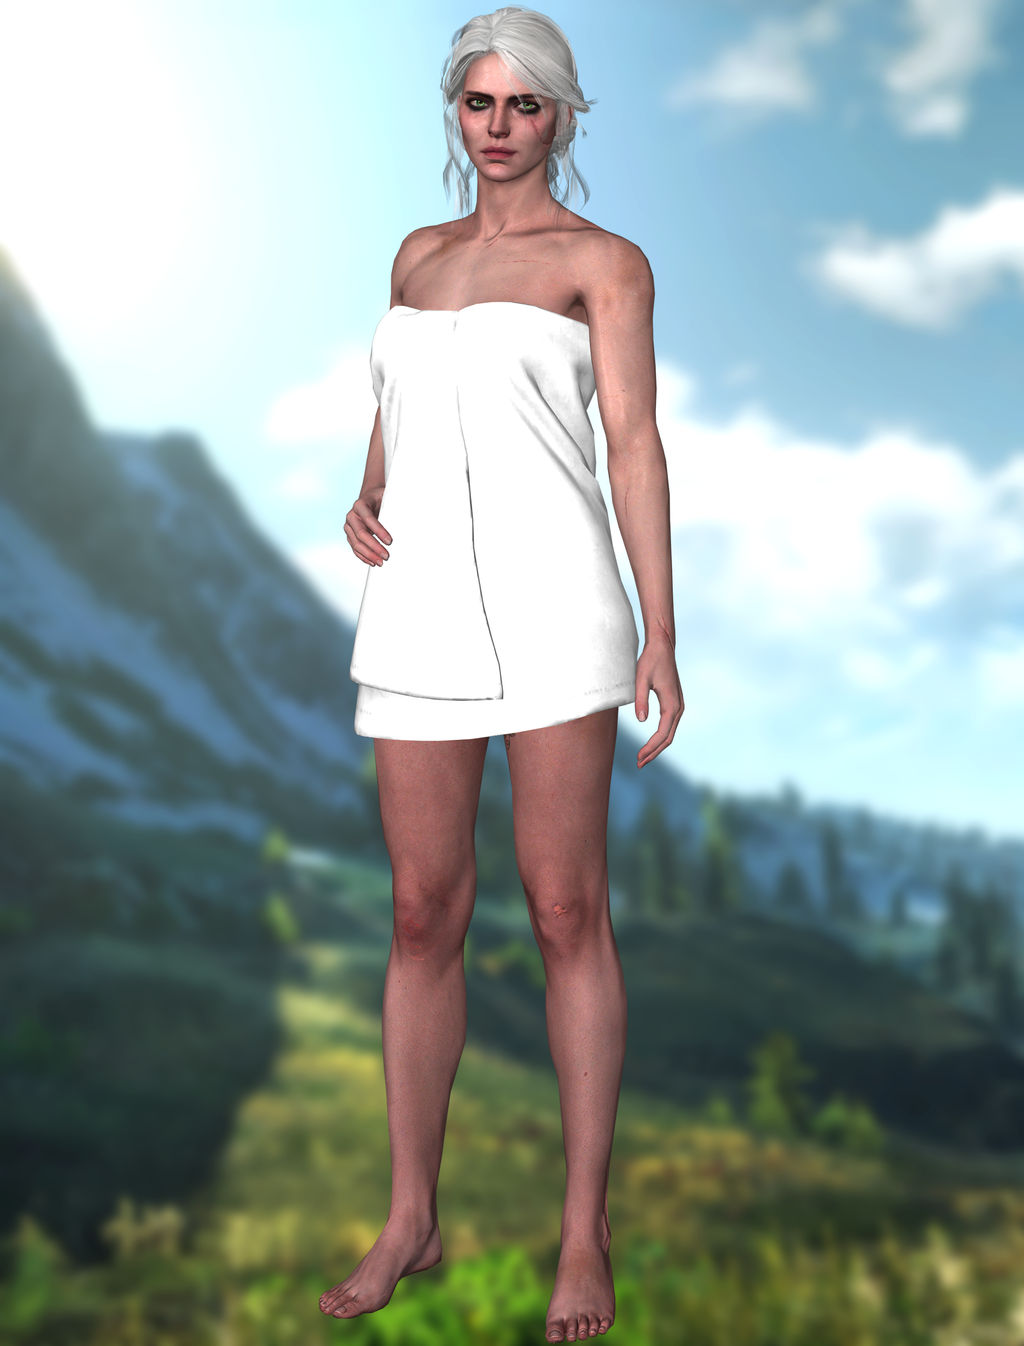 Nude ciri witcher 3 The Witcher